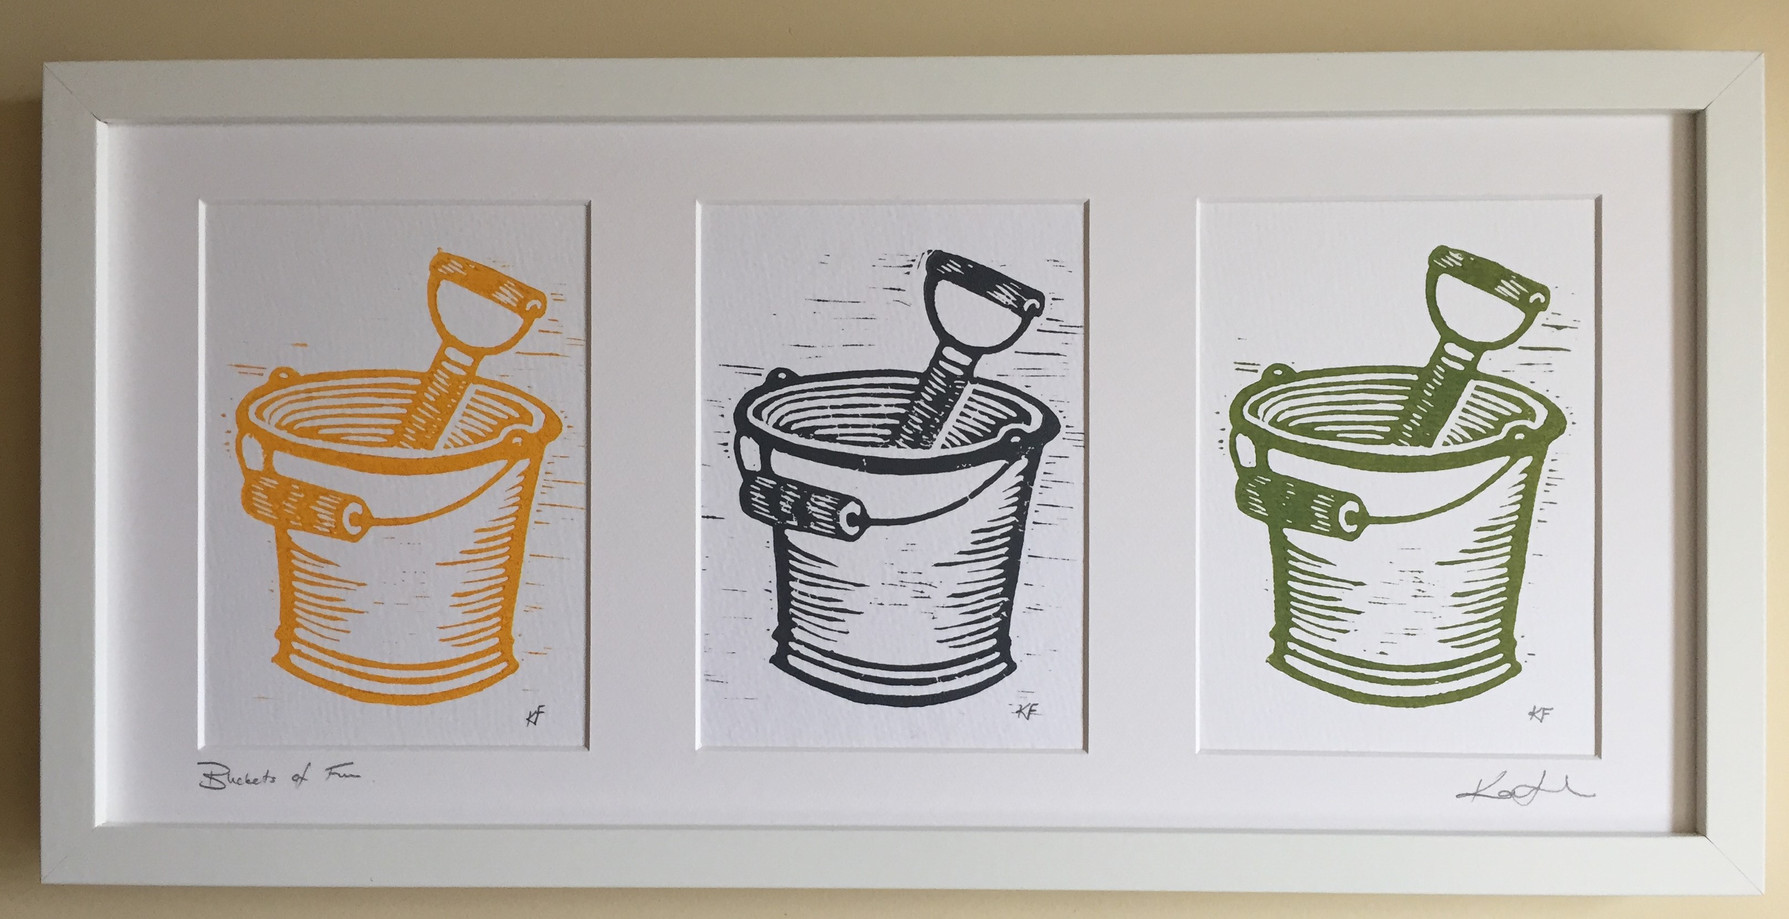 Buckets of Fun original lino cut